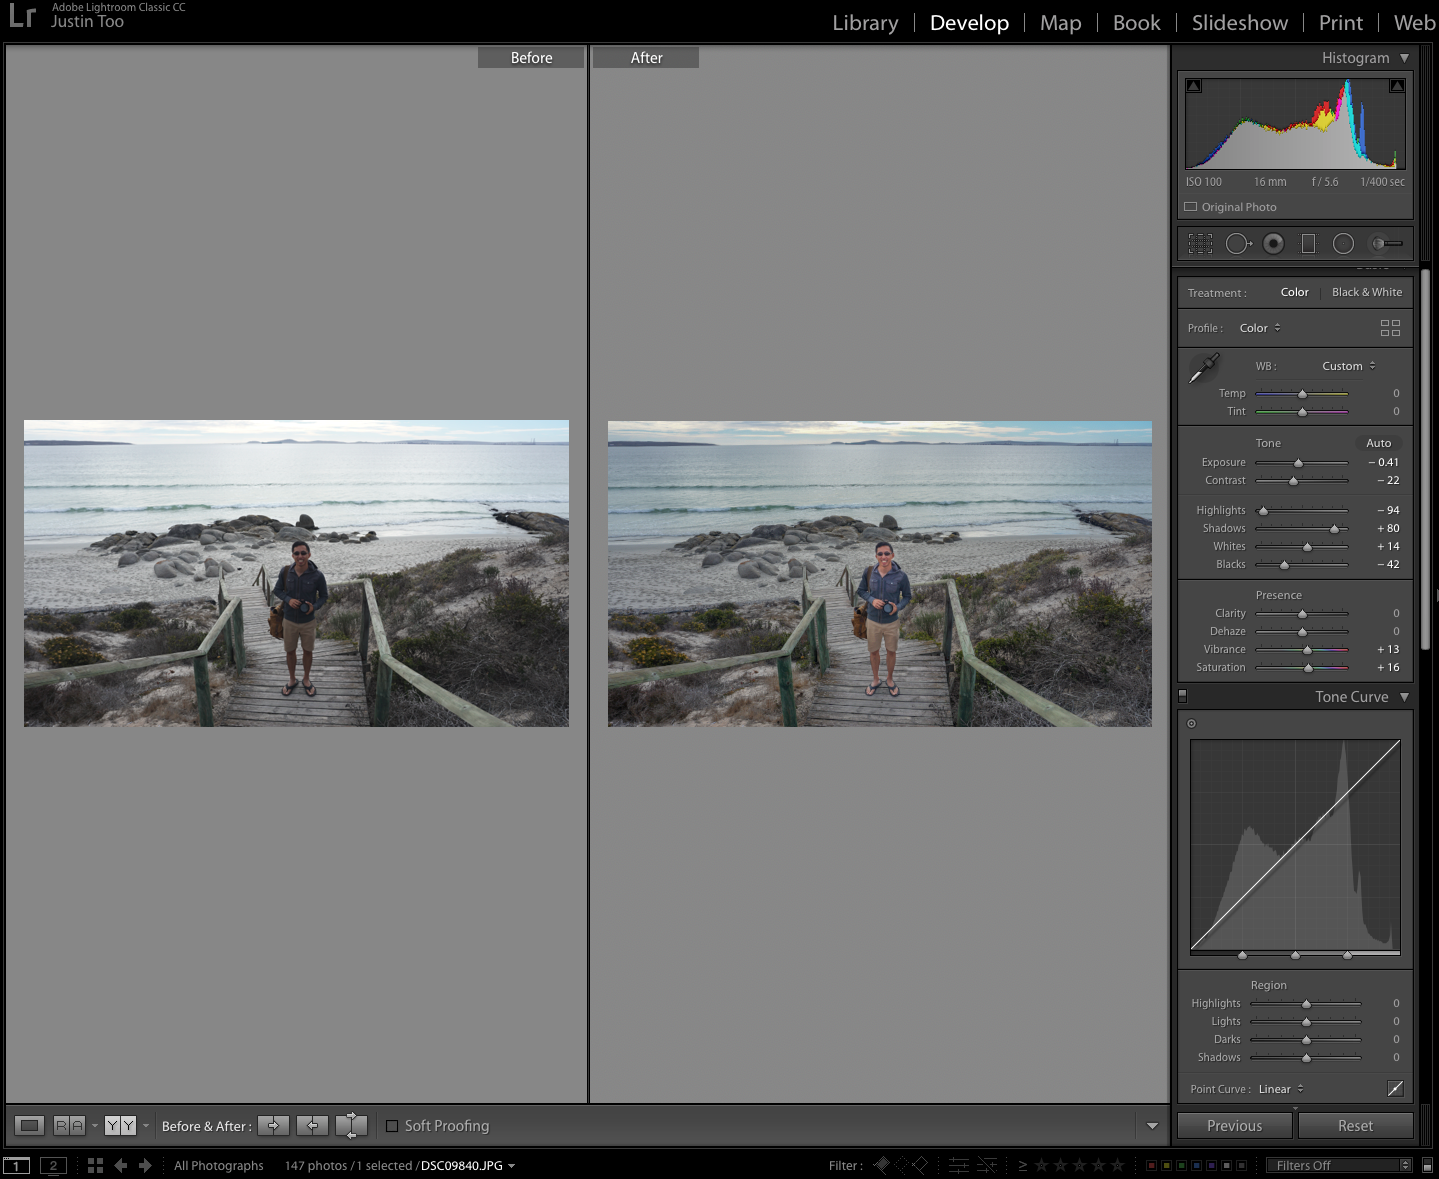 justin too creations, adobe lightroom, lightroom features, lightroom before and after